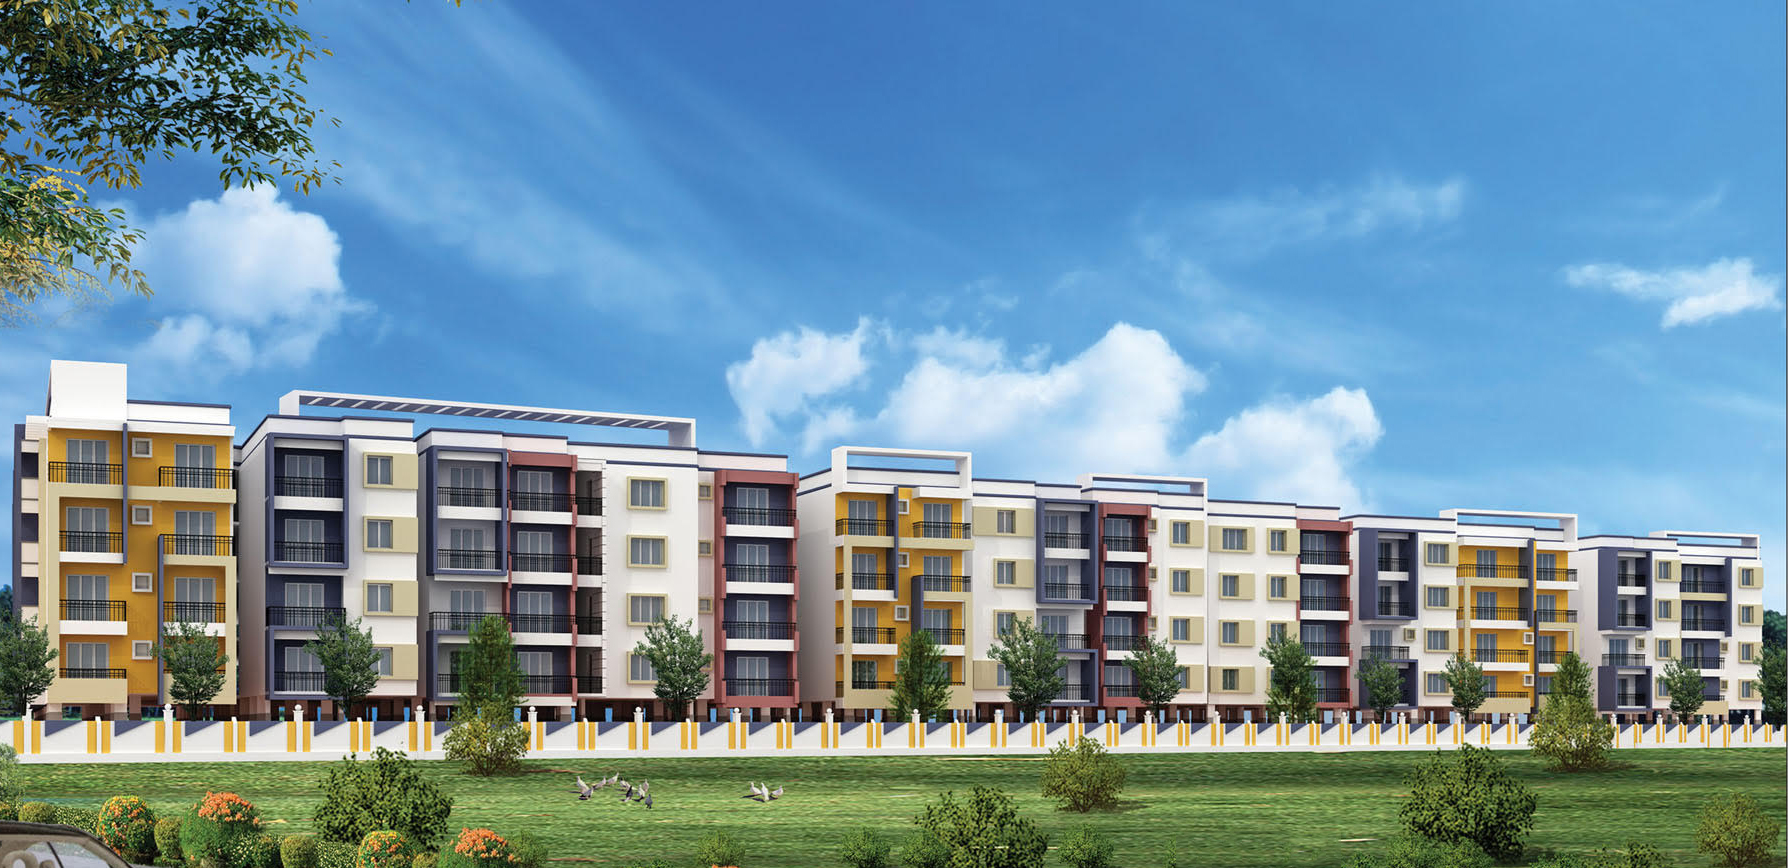 2 & 3Bhk Flats for sale in Whitefield,Bangalore Call on 9686201040